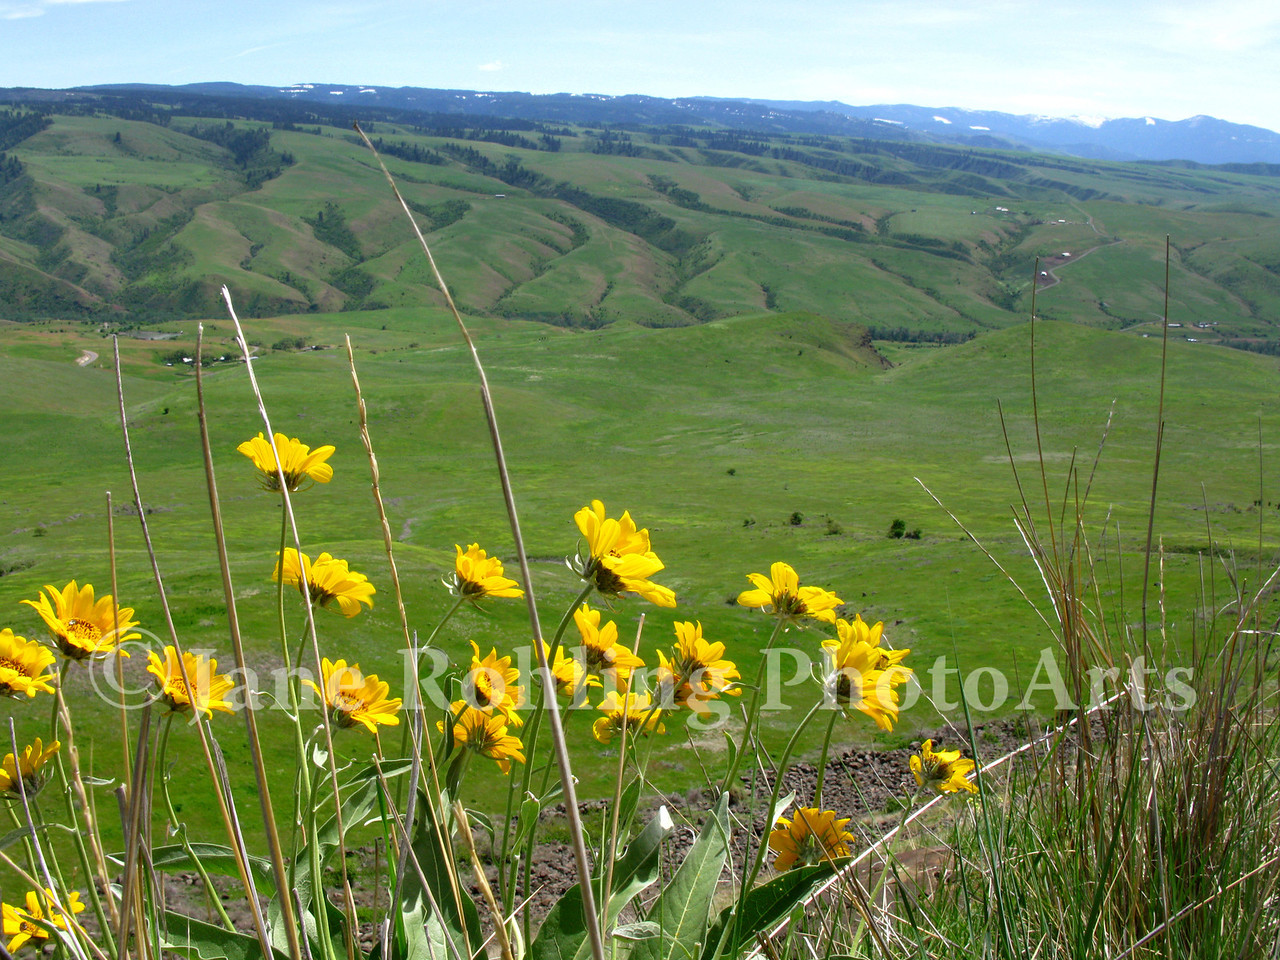 Yellow wildflowers bloom over White Bird Battlefield, the site of the first battle of the Nez Perce War, near the town of White Bird, along Highway 95 in north central Idaho.